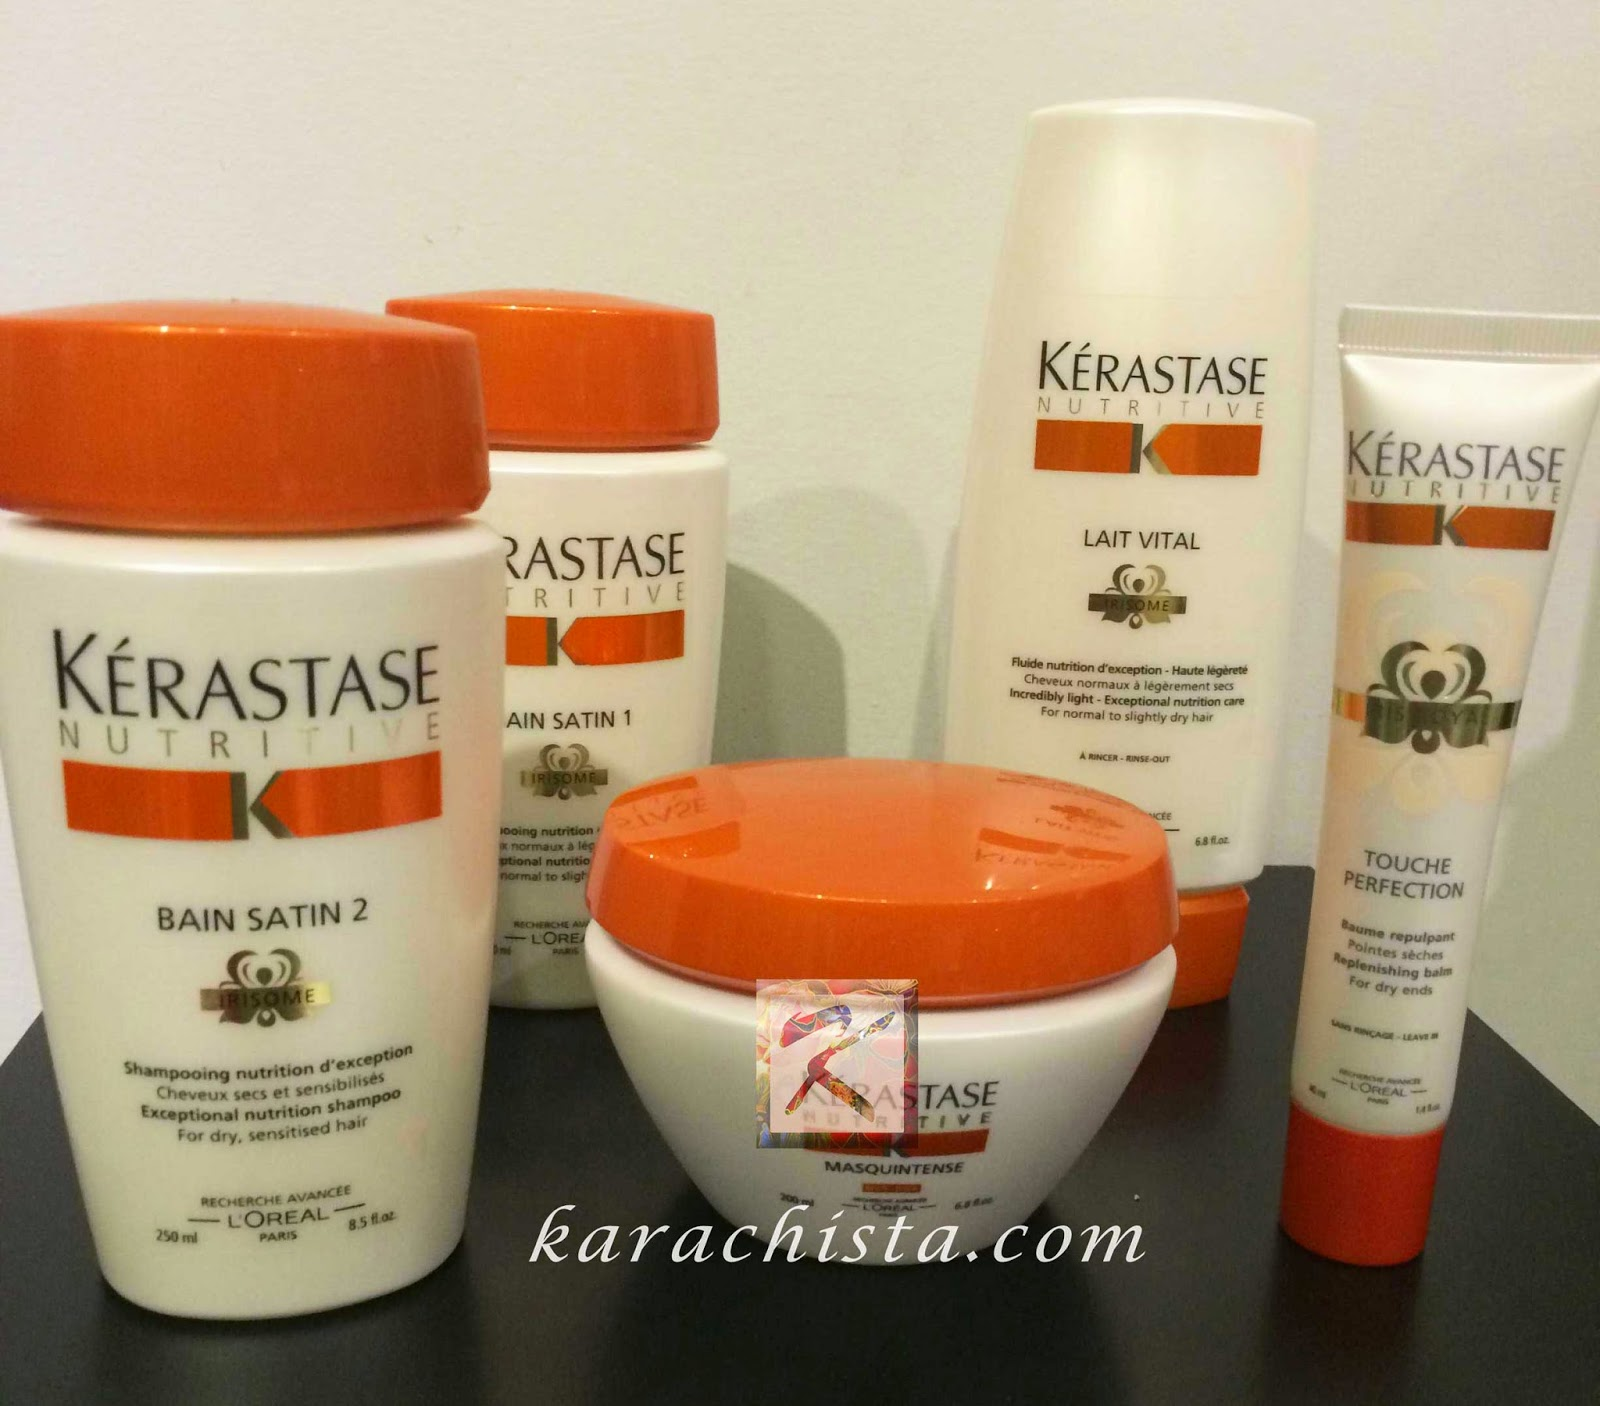 Kerastase treatment for great hair